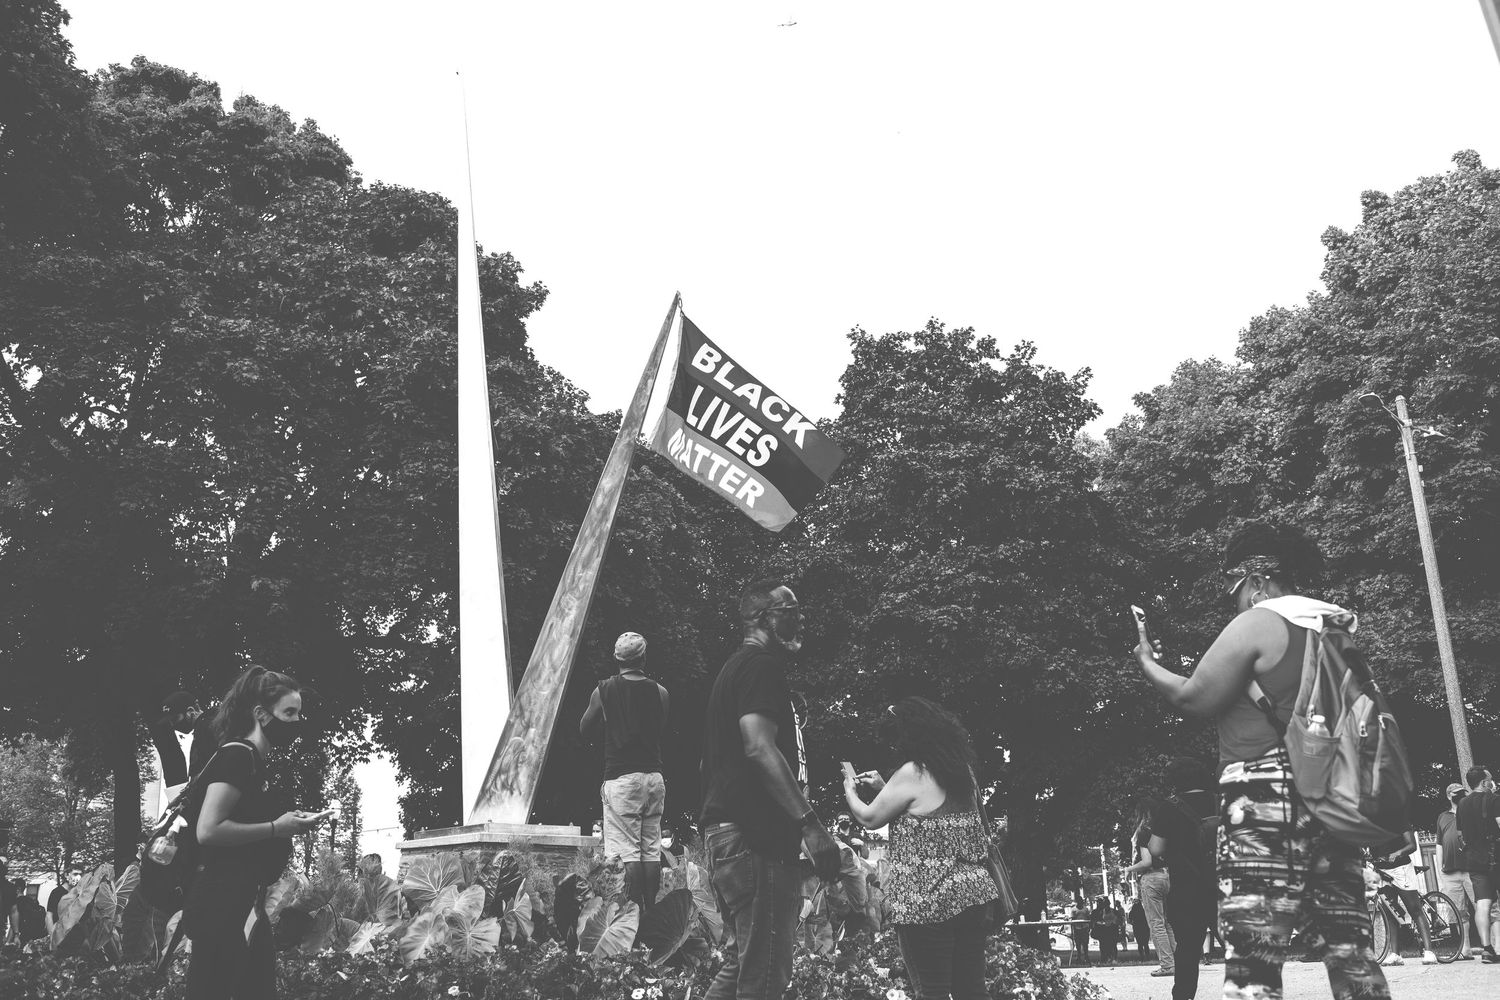 A Black lives matter flag is hung from a sculpture in Civic Center Park in Kenosha, WI.